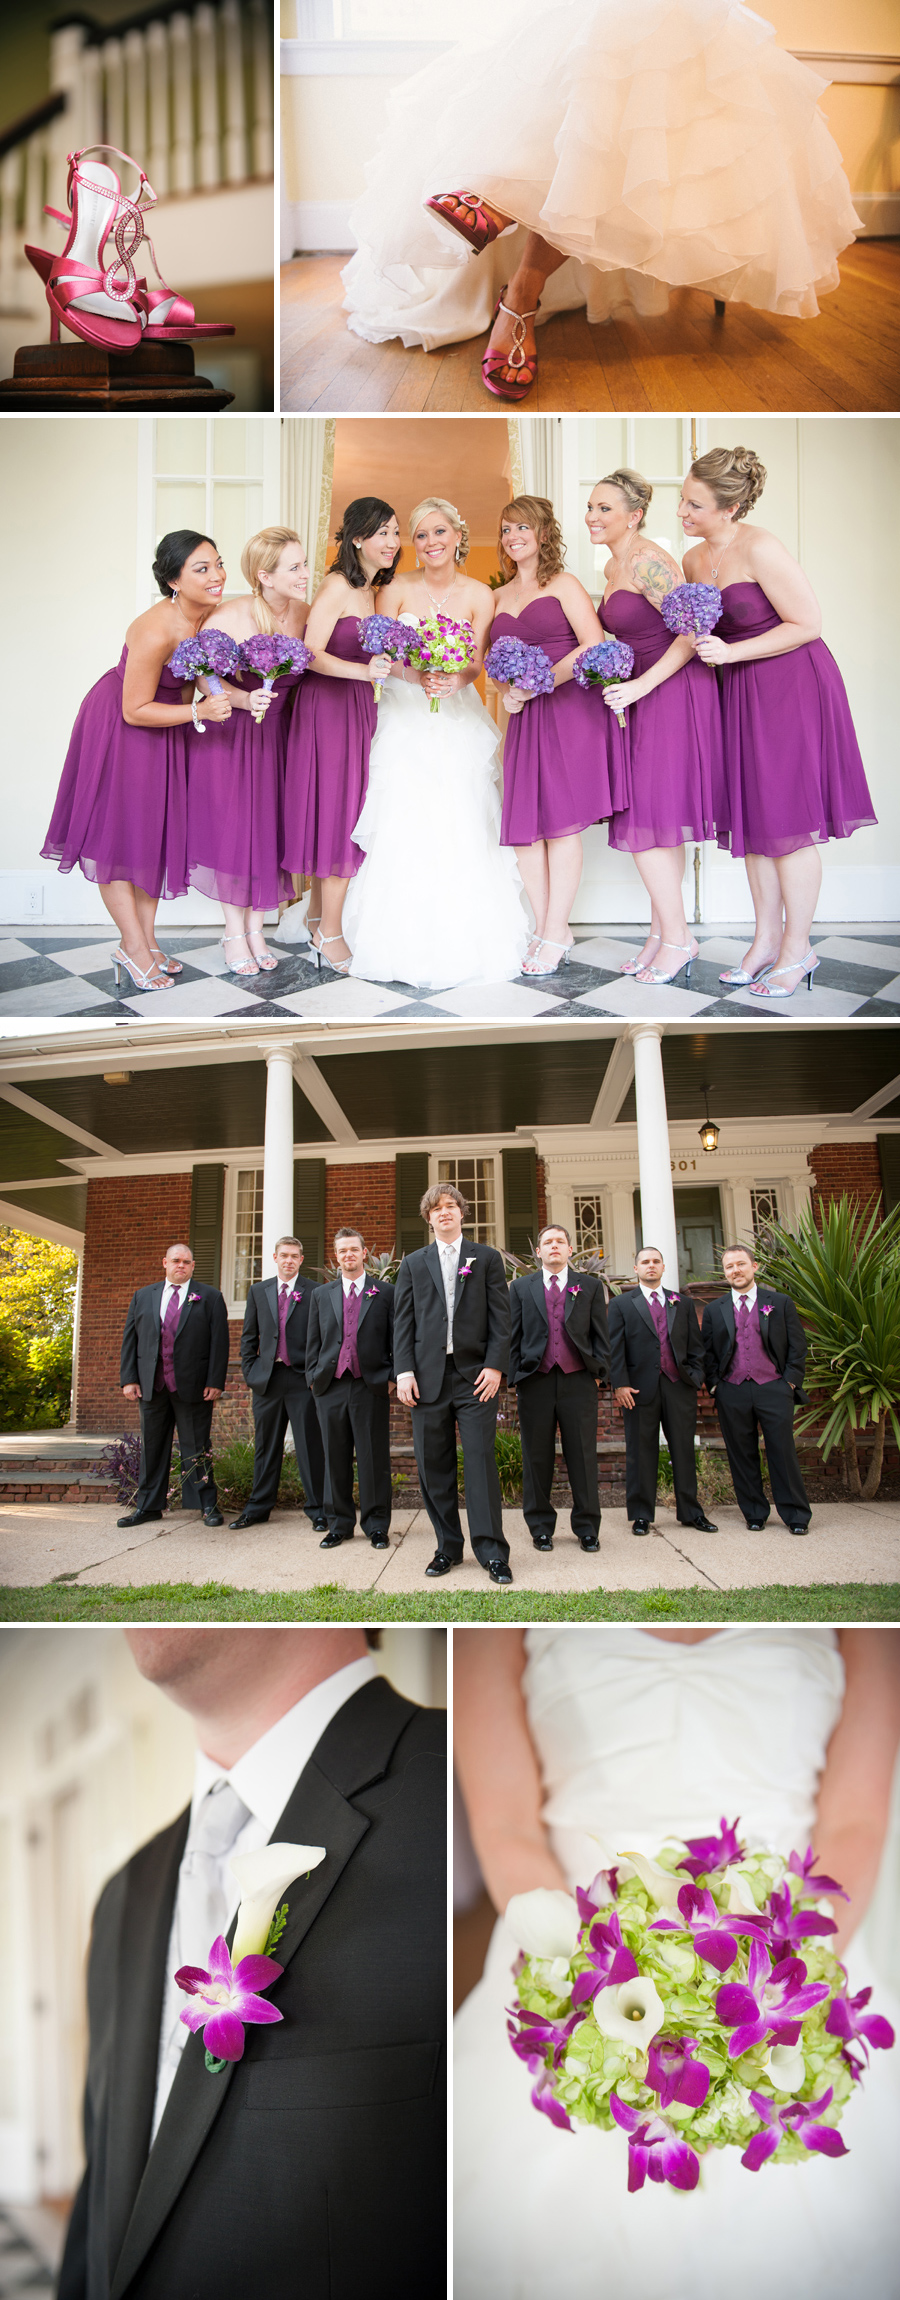 Lyndsay and Berry wedding at Seibel's House and Gardens Columbia SC